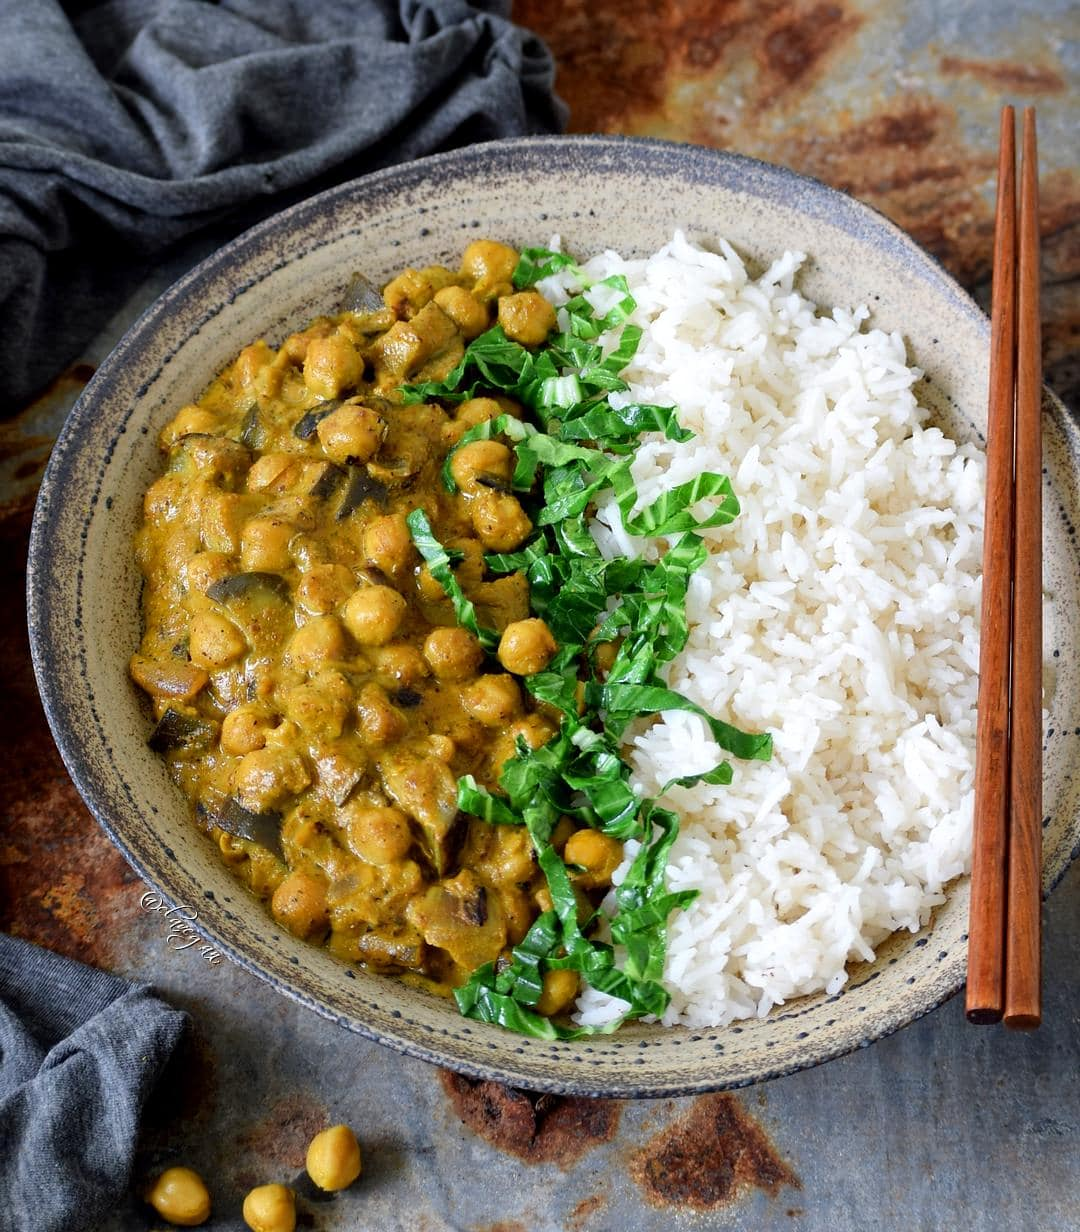 Vegan chickpea curry gluten free and low fat recipe with eggplant, chickpeas and spinach